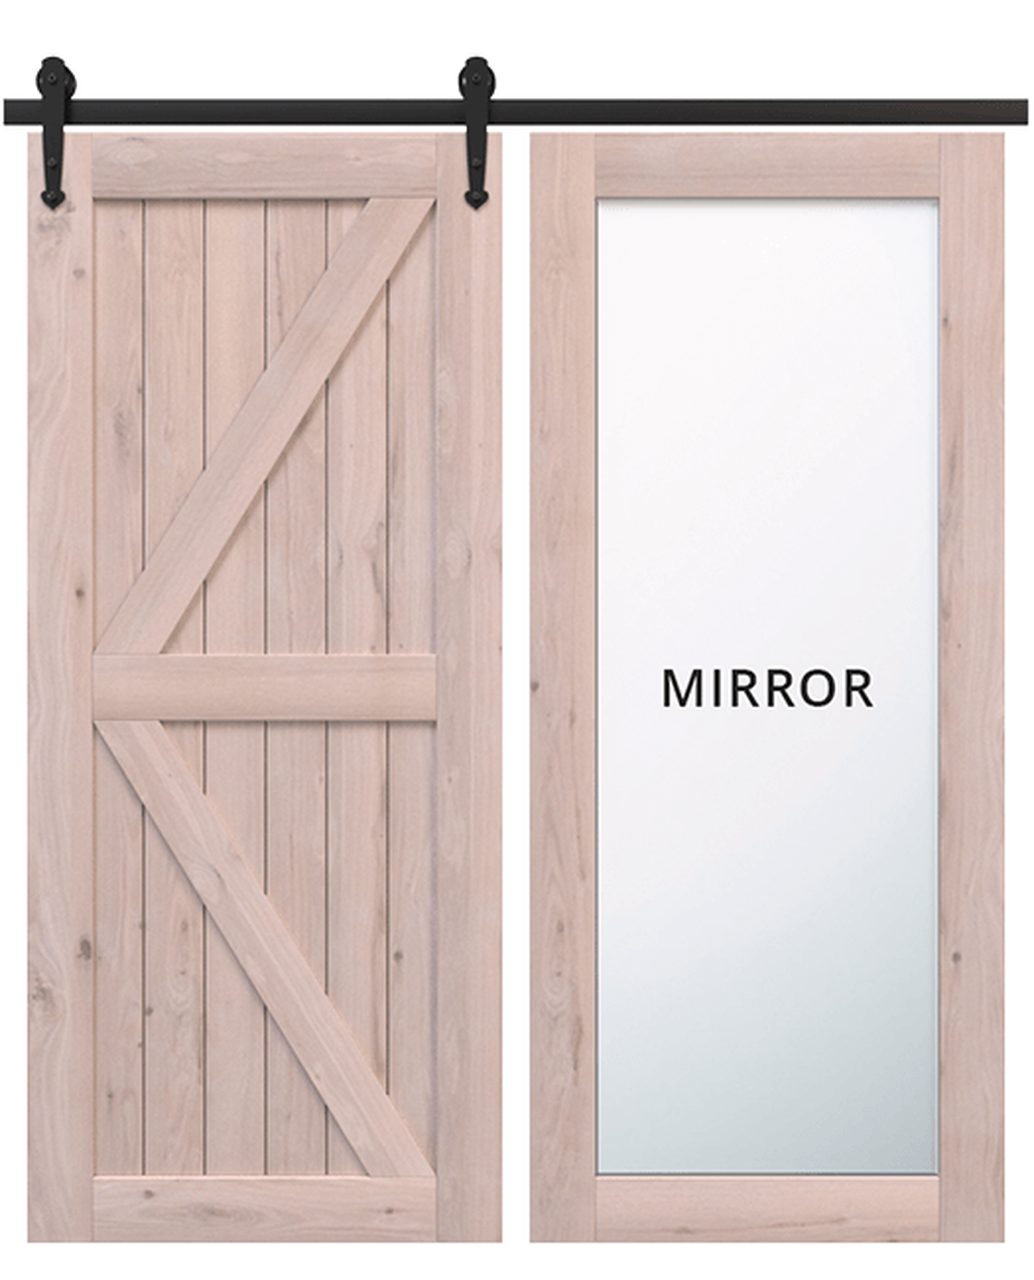 sonoma unfinished wood diagonal pattern barn door with mirror panel